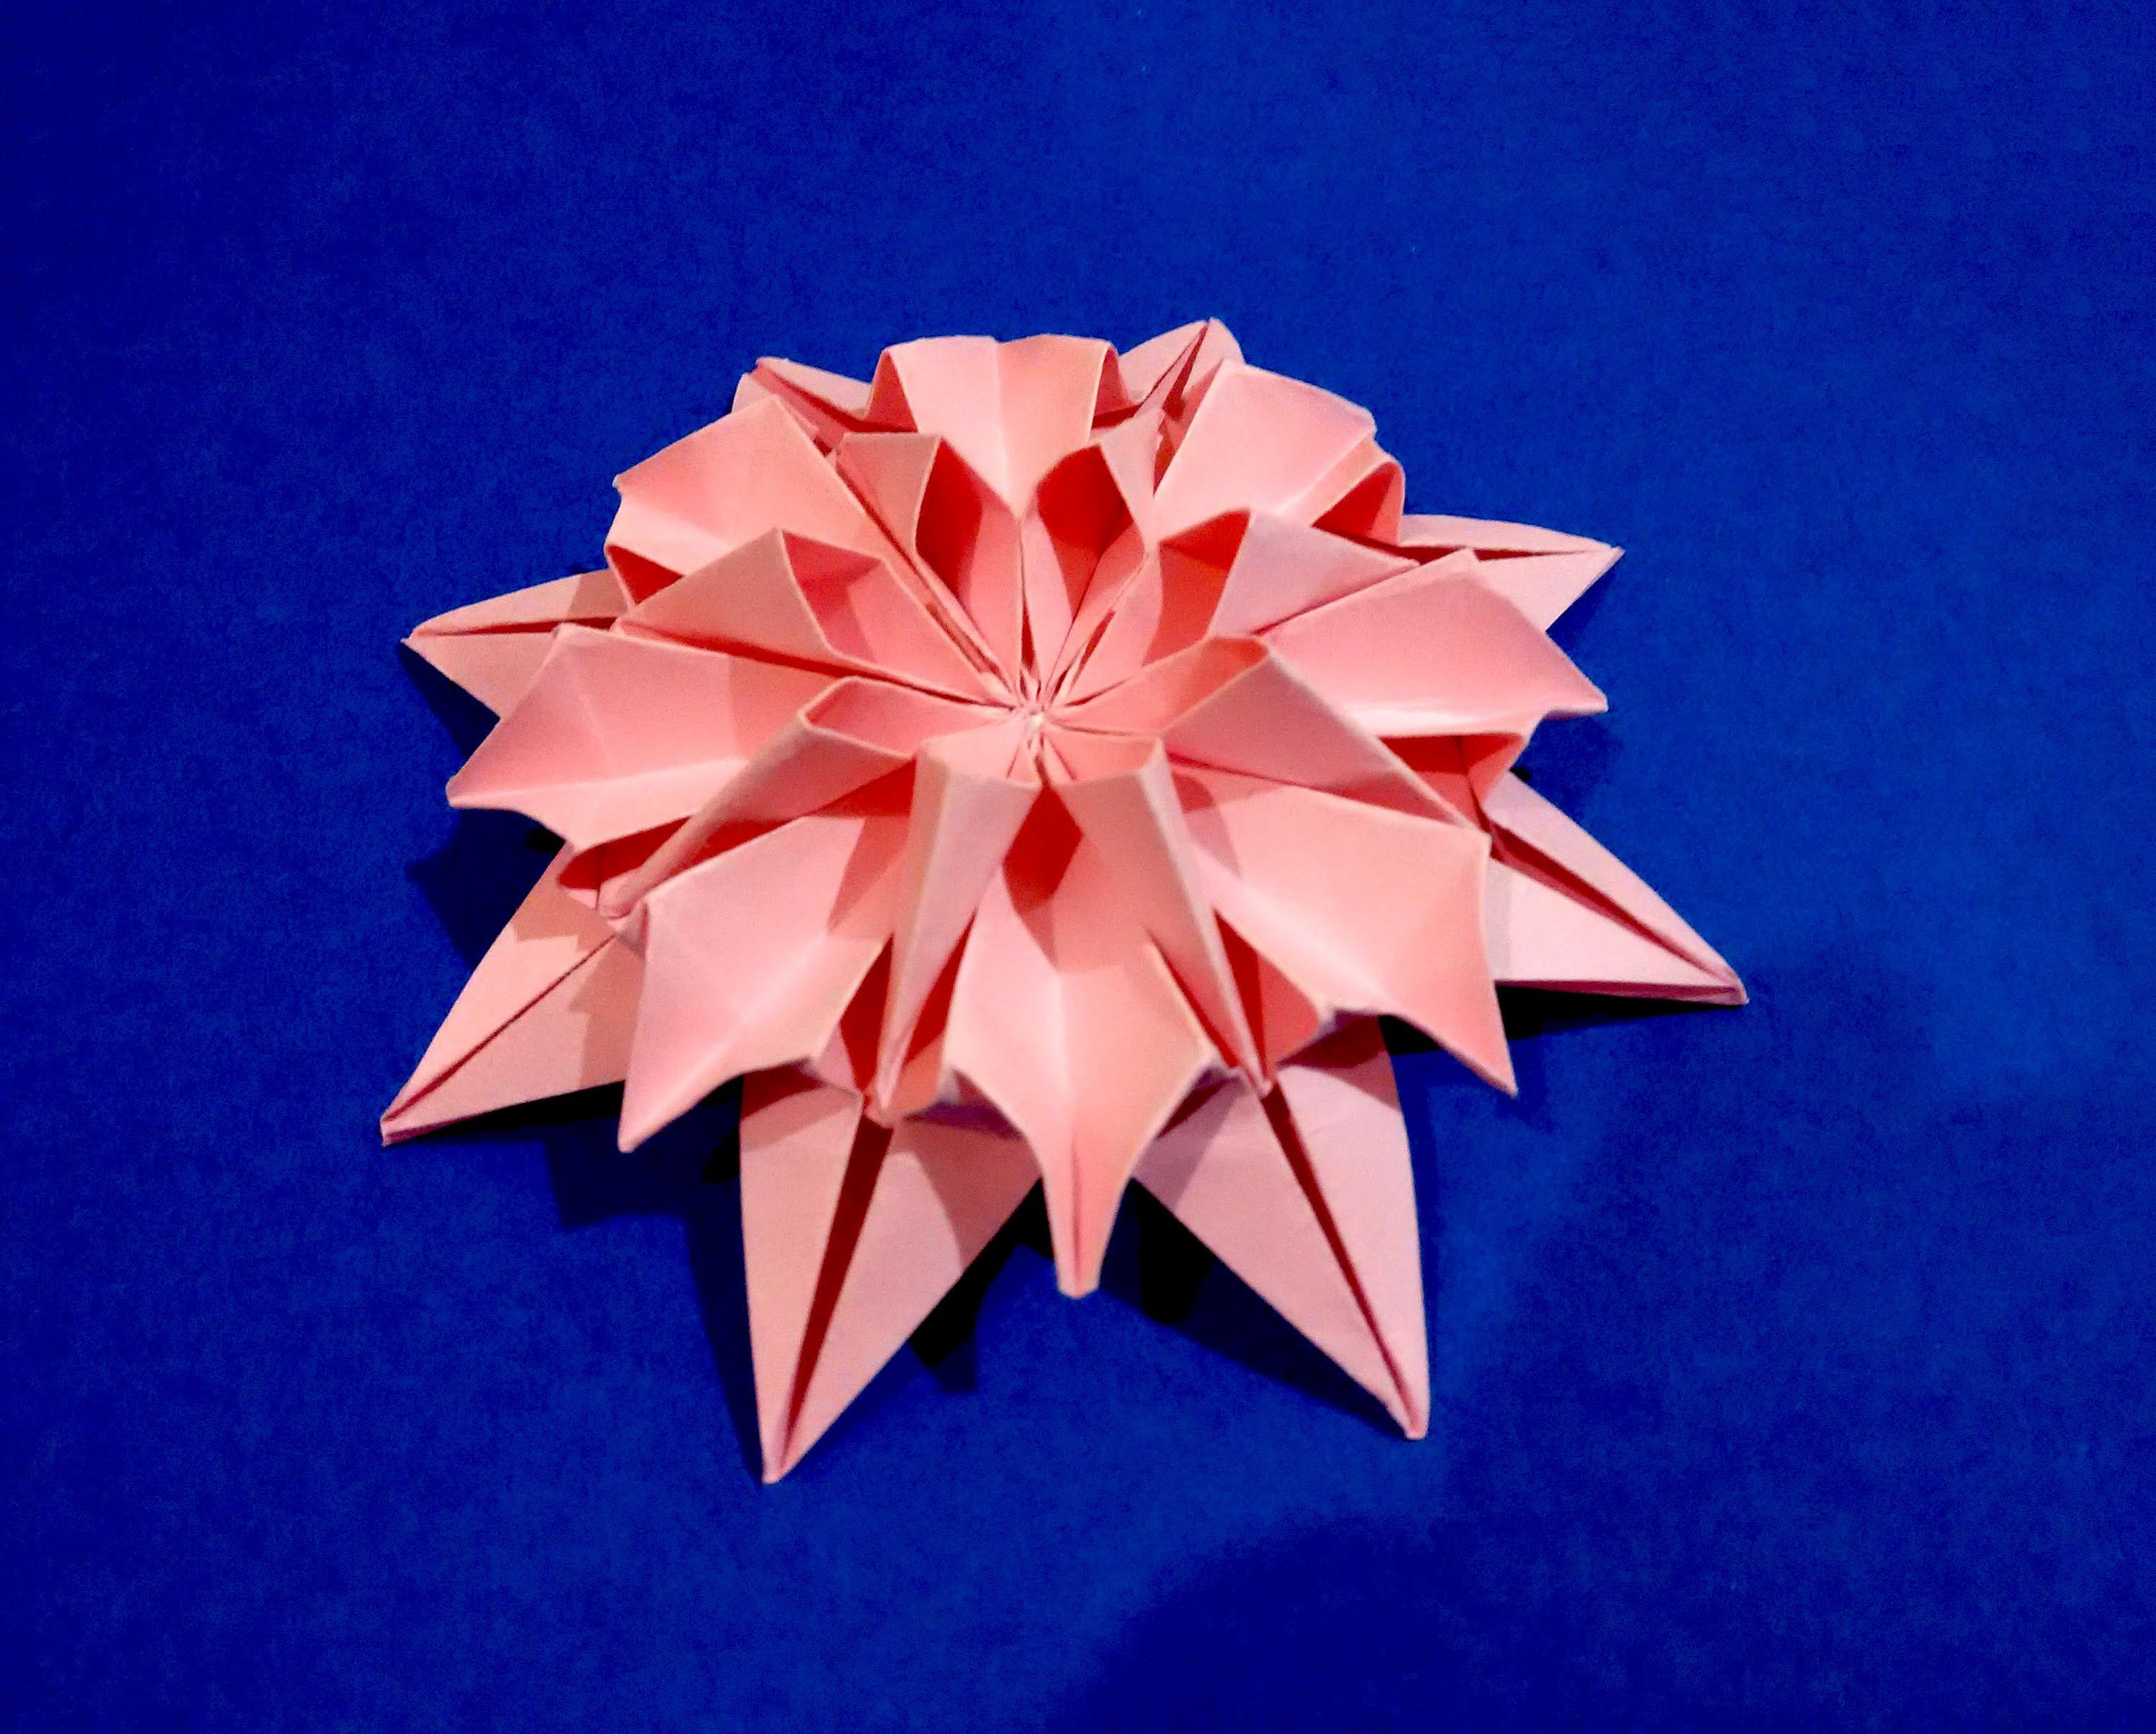 christmas origami flower diagram wiring for a leviton dimmer switch spring bouquet paper great ideas woman 39s day easter